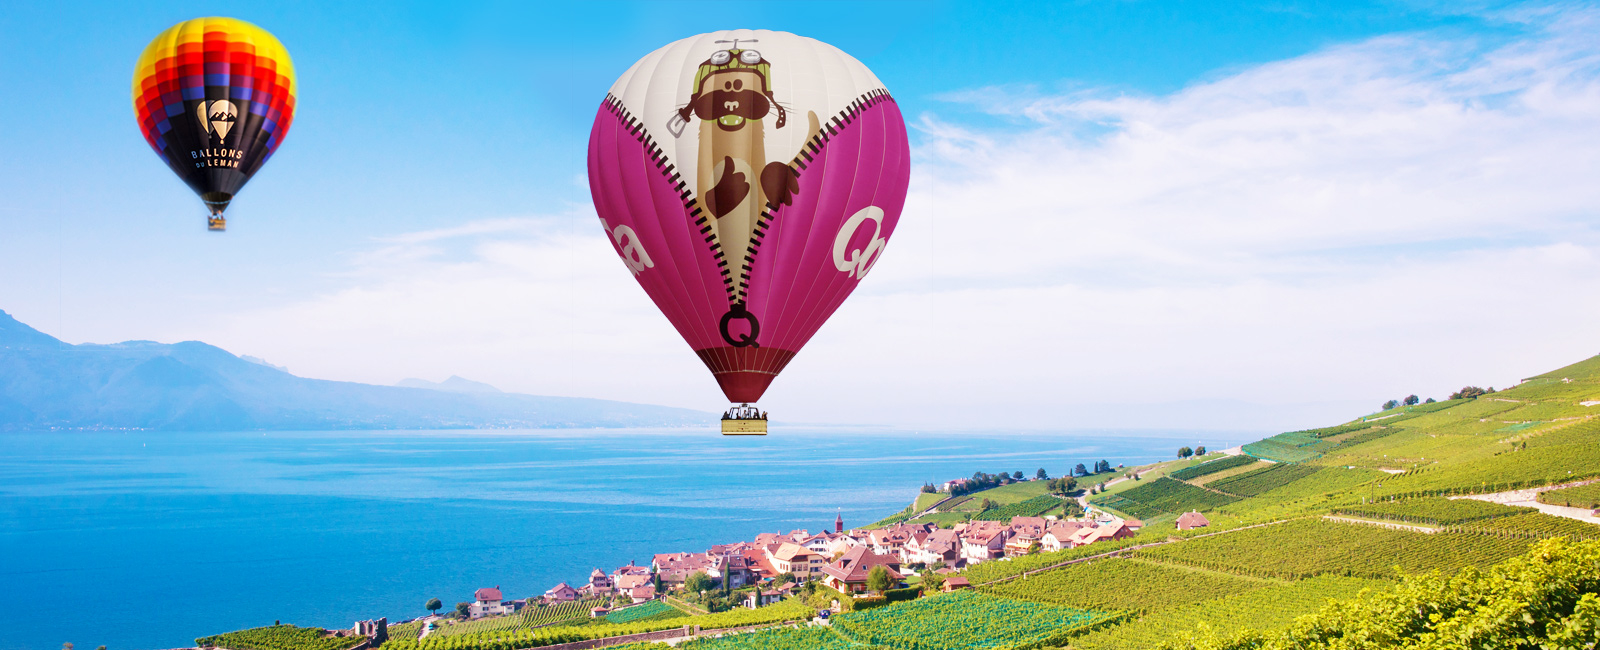 montgolfiere geneve